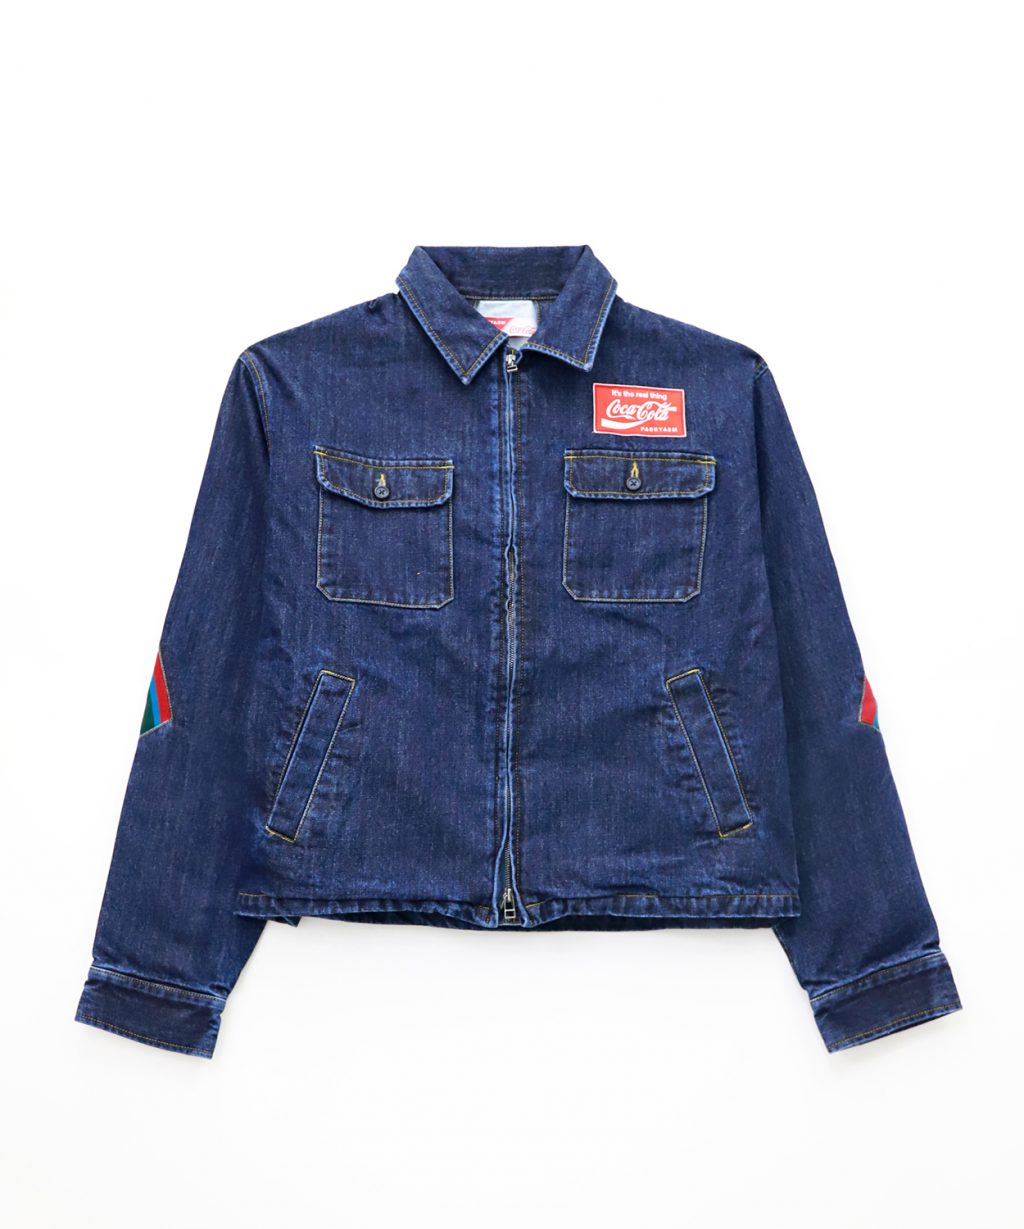 COCA-COLA-DENIM-WORK-JACKET-indigo1-1024x1229.jpg